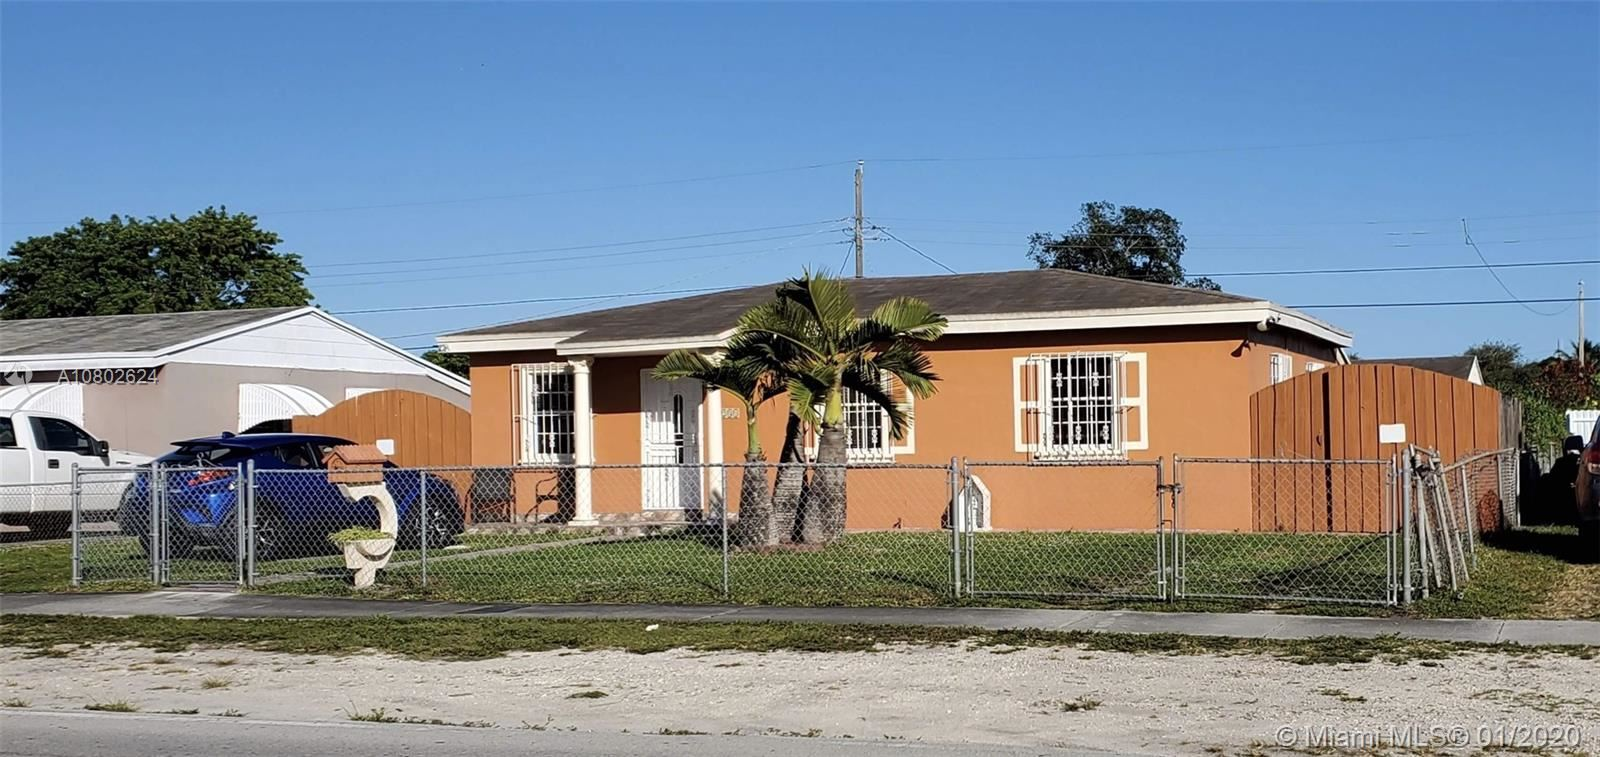 15231 NW 32nd Ave, Miami Gardens, FL 33054 - MLS#: A10802624